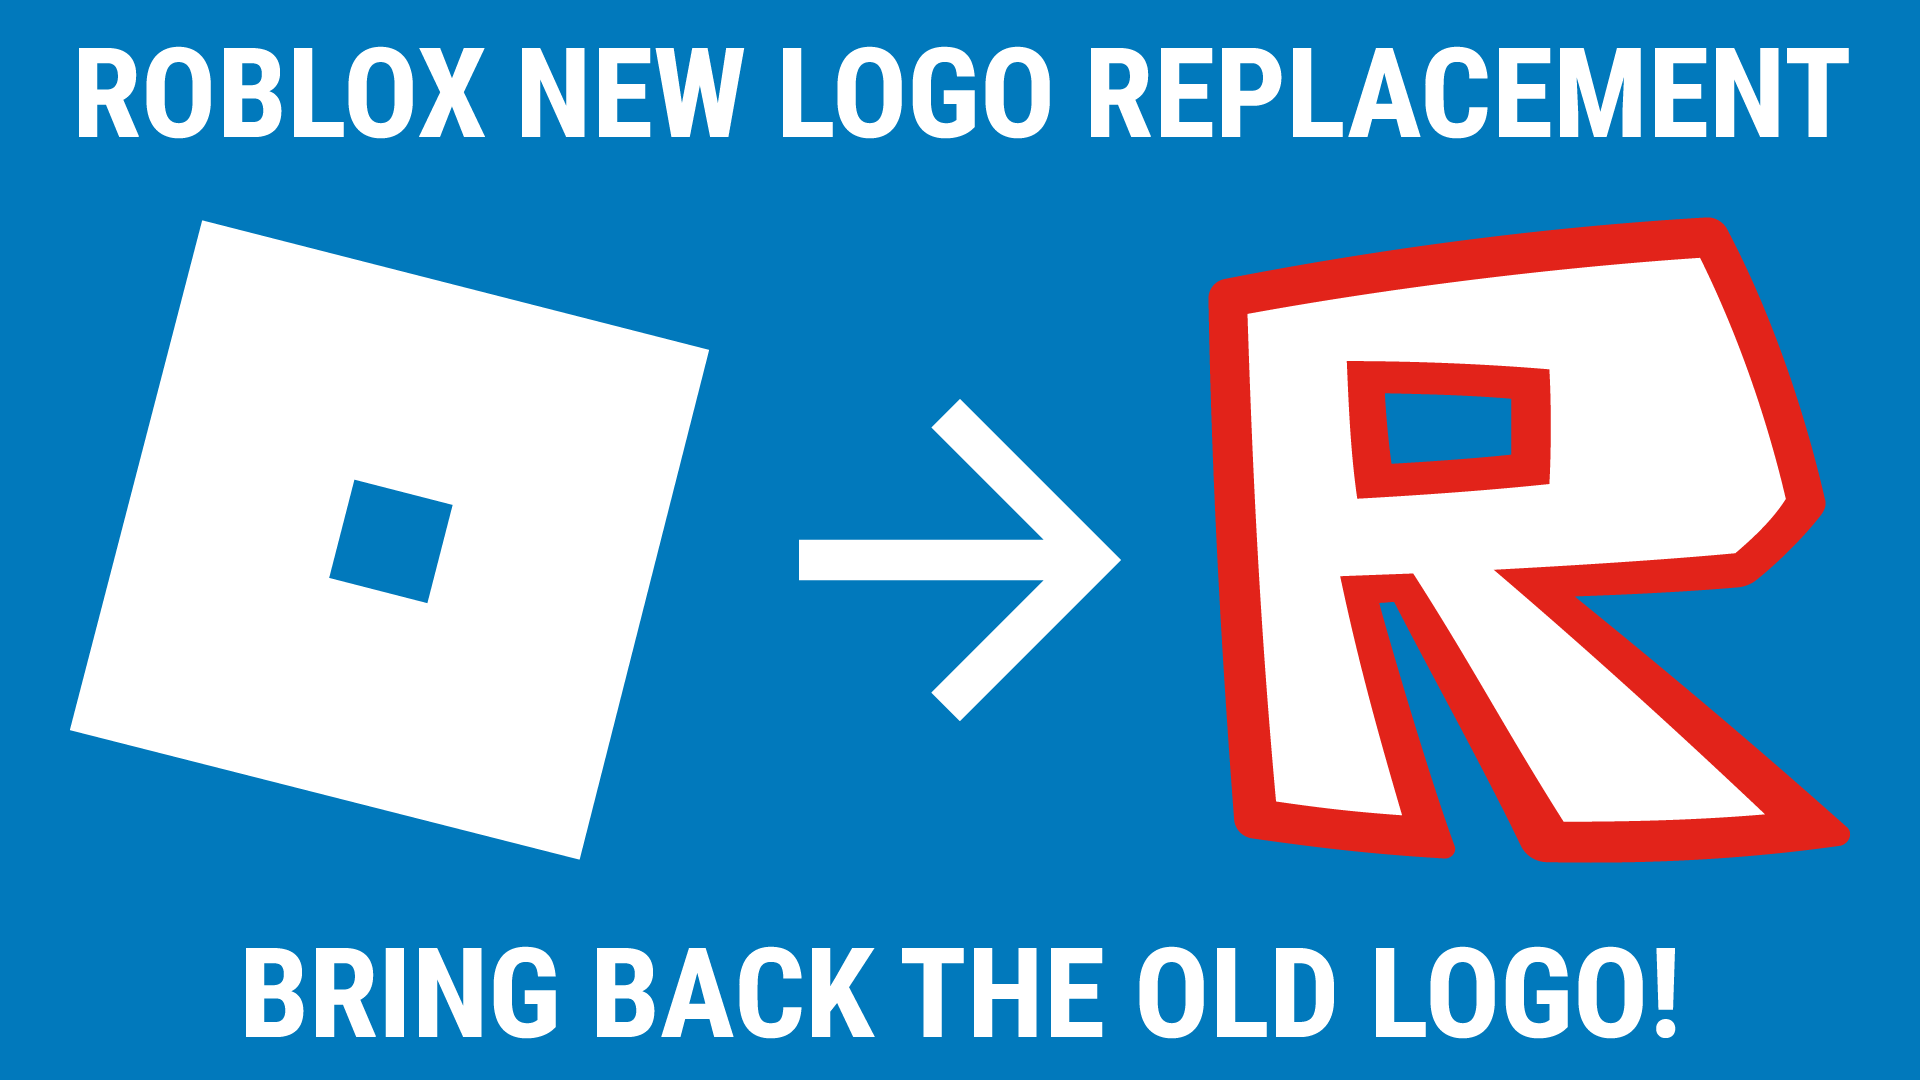 Roblox Fotos Logo Roblox New Logo Replacement Userstyles Org